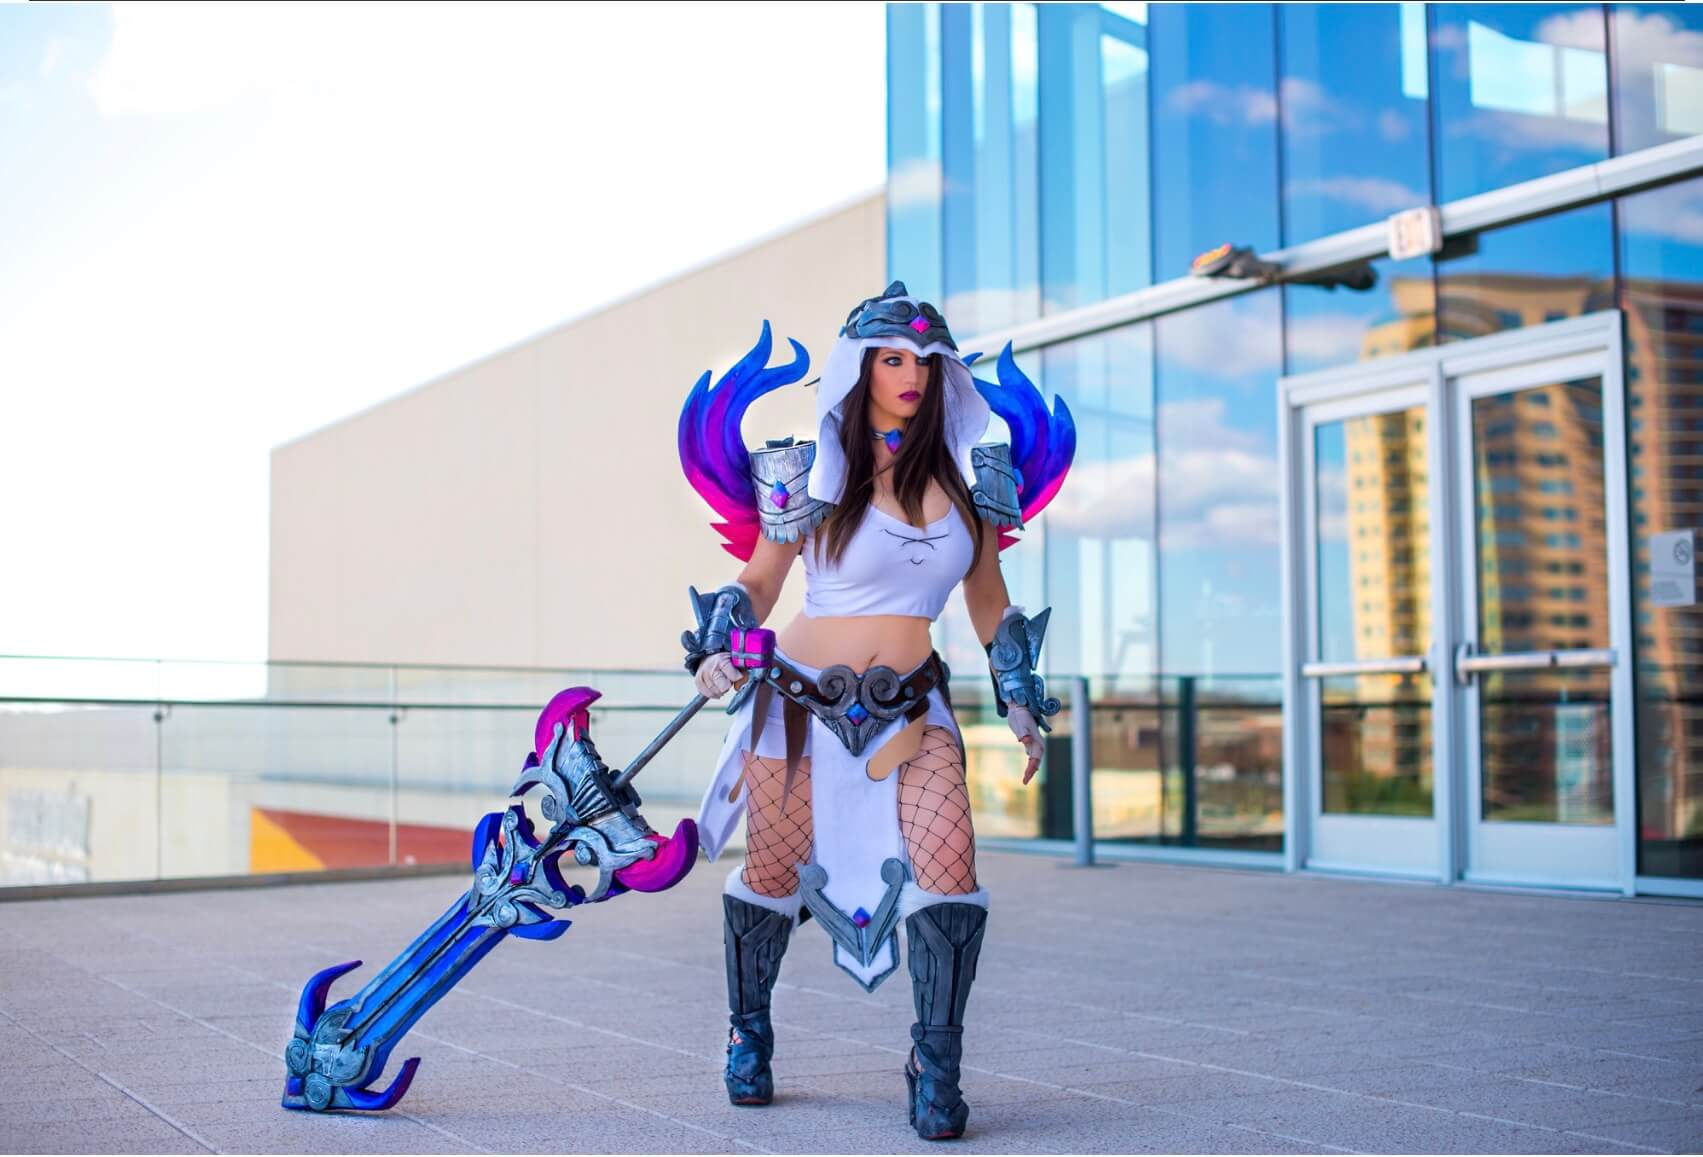 Nemesis Smite sexy photos